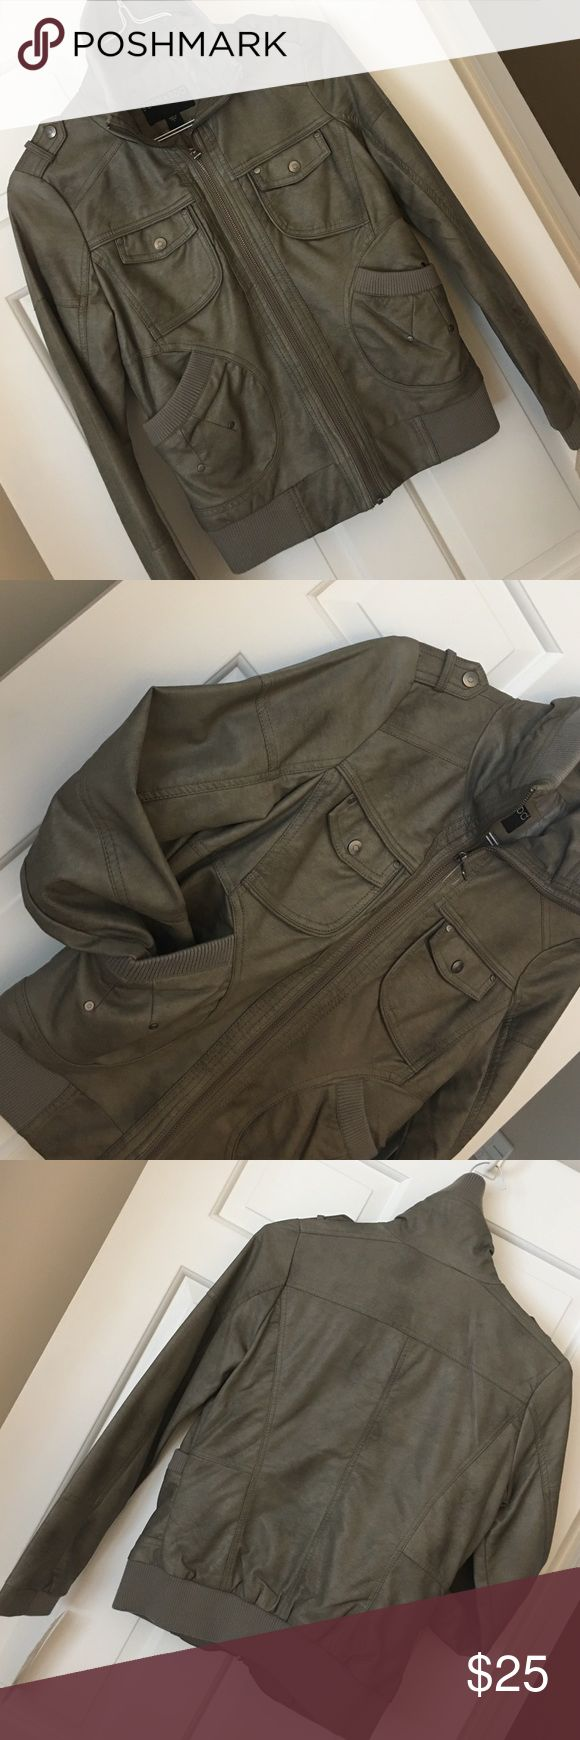 Vegan leather bomber jacket NWT vegan 'leather' bomber jacket. Knit robbed trim. Cute detail. Color is a mix of olive green & grey. Jackets & Coats Utility Jackets